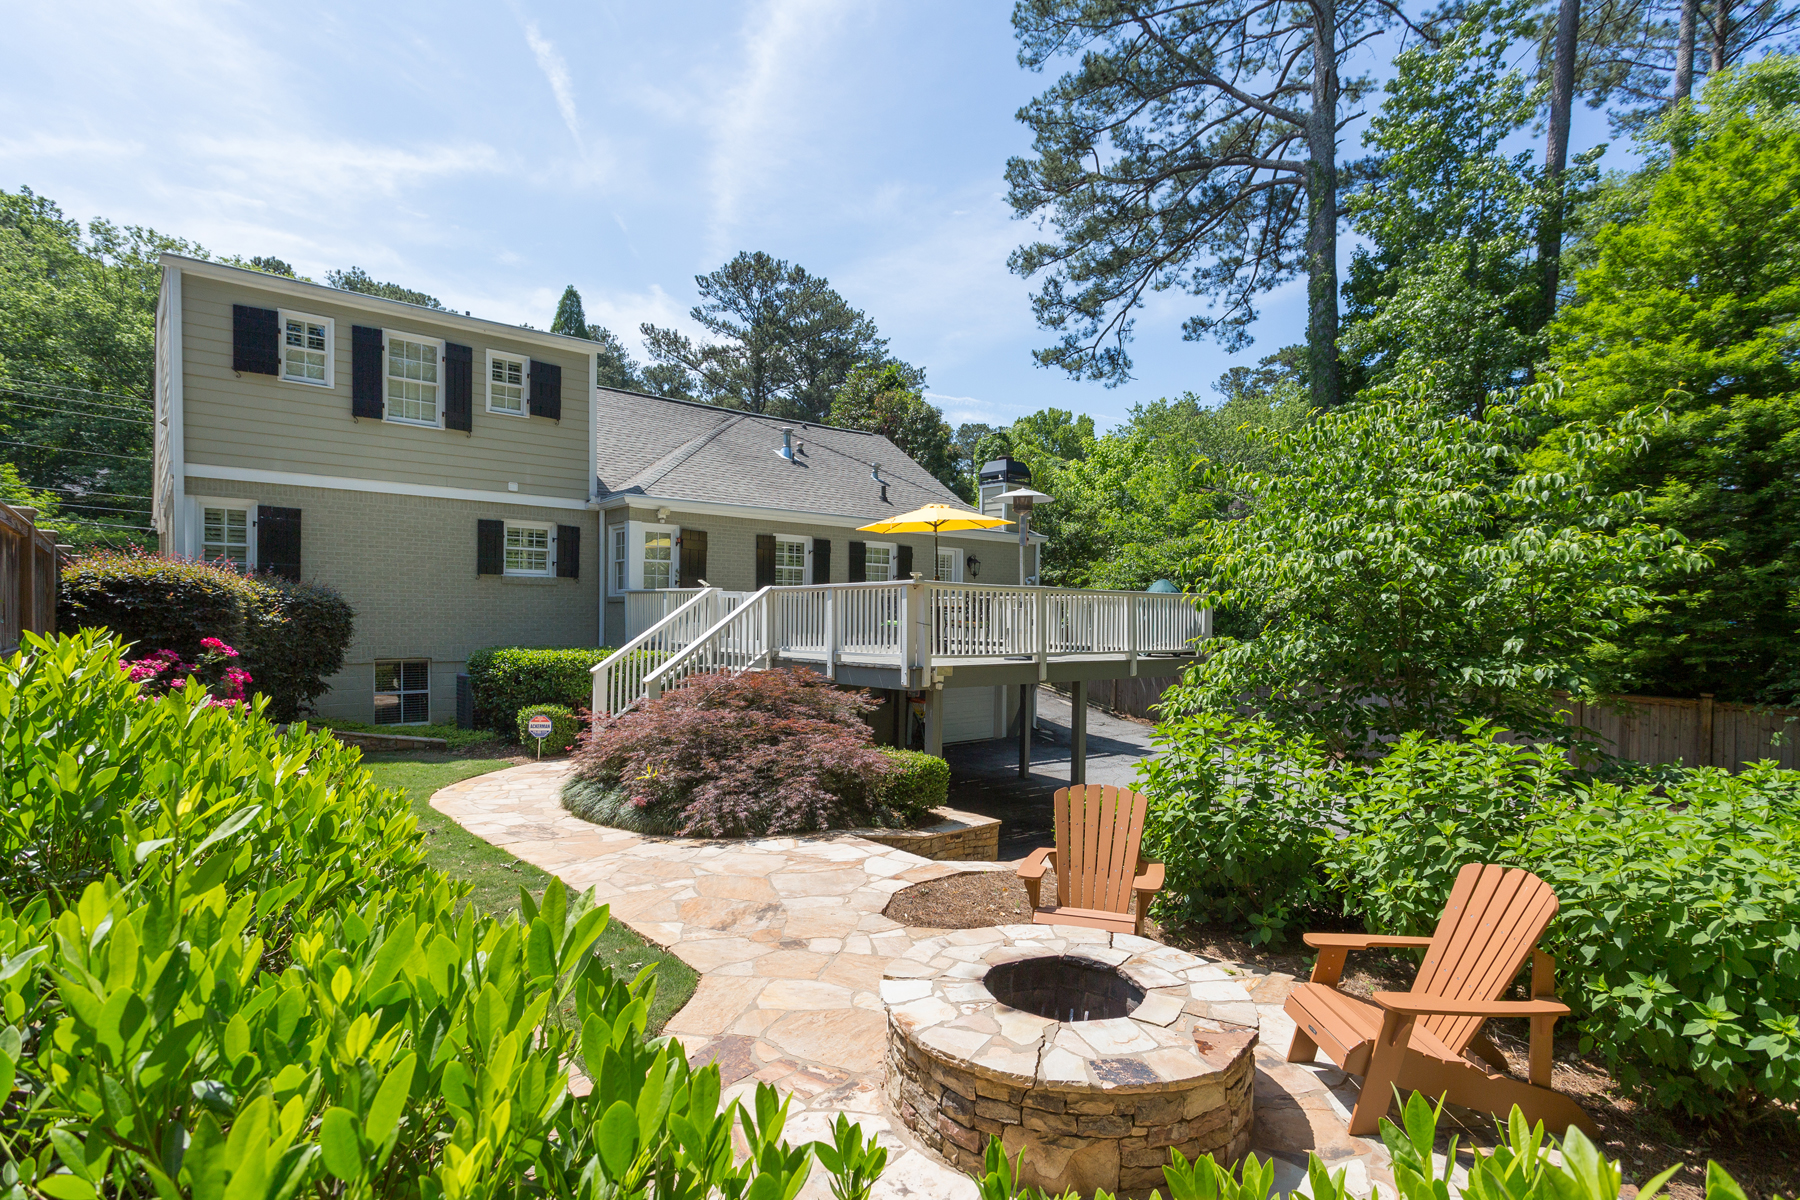 Tek Ailelik Ev için Satış at Cape Cod Home in Sought After Morningside 1738 Johnson Road Atlanta, Georgia, 30306 Amerika Birleşik Devletleri